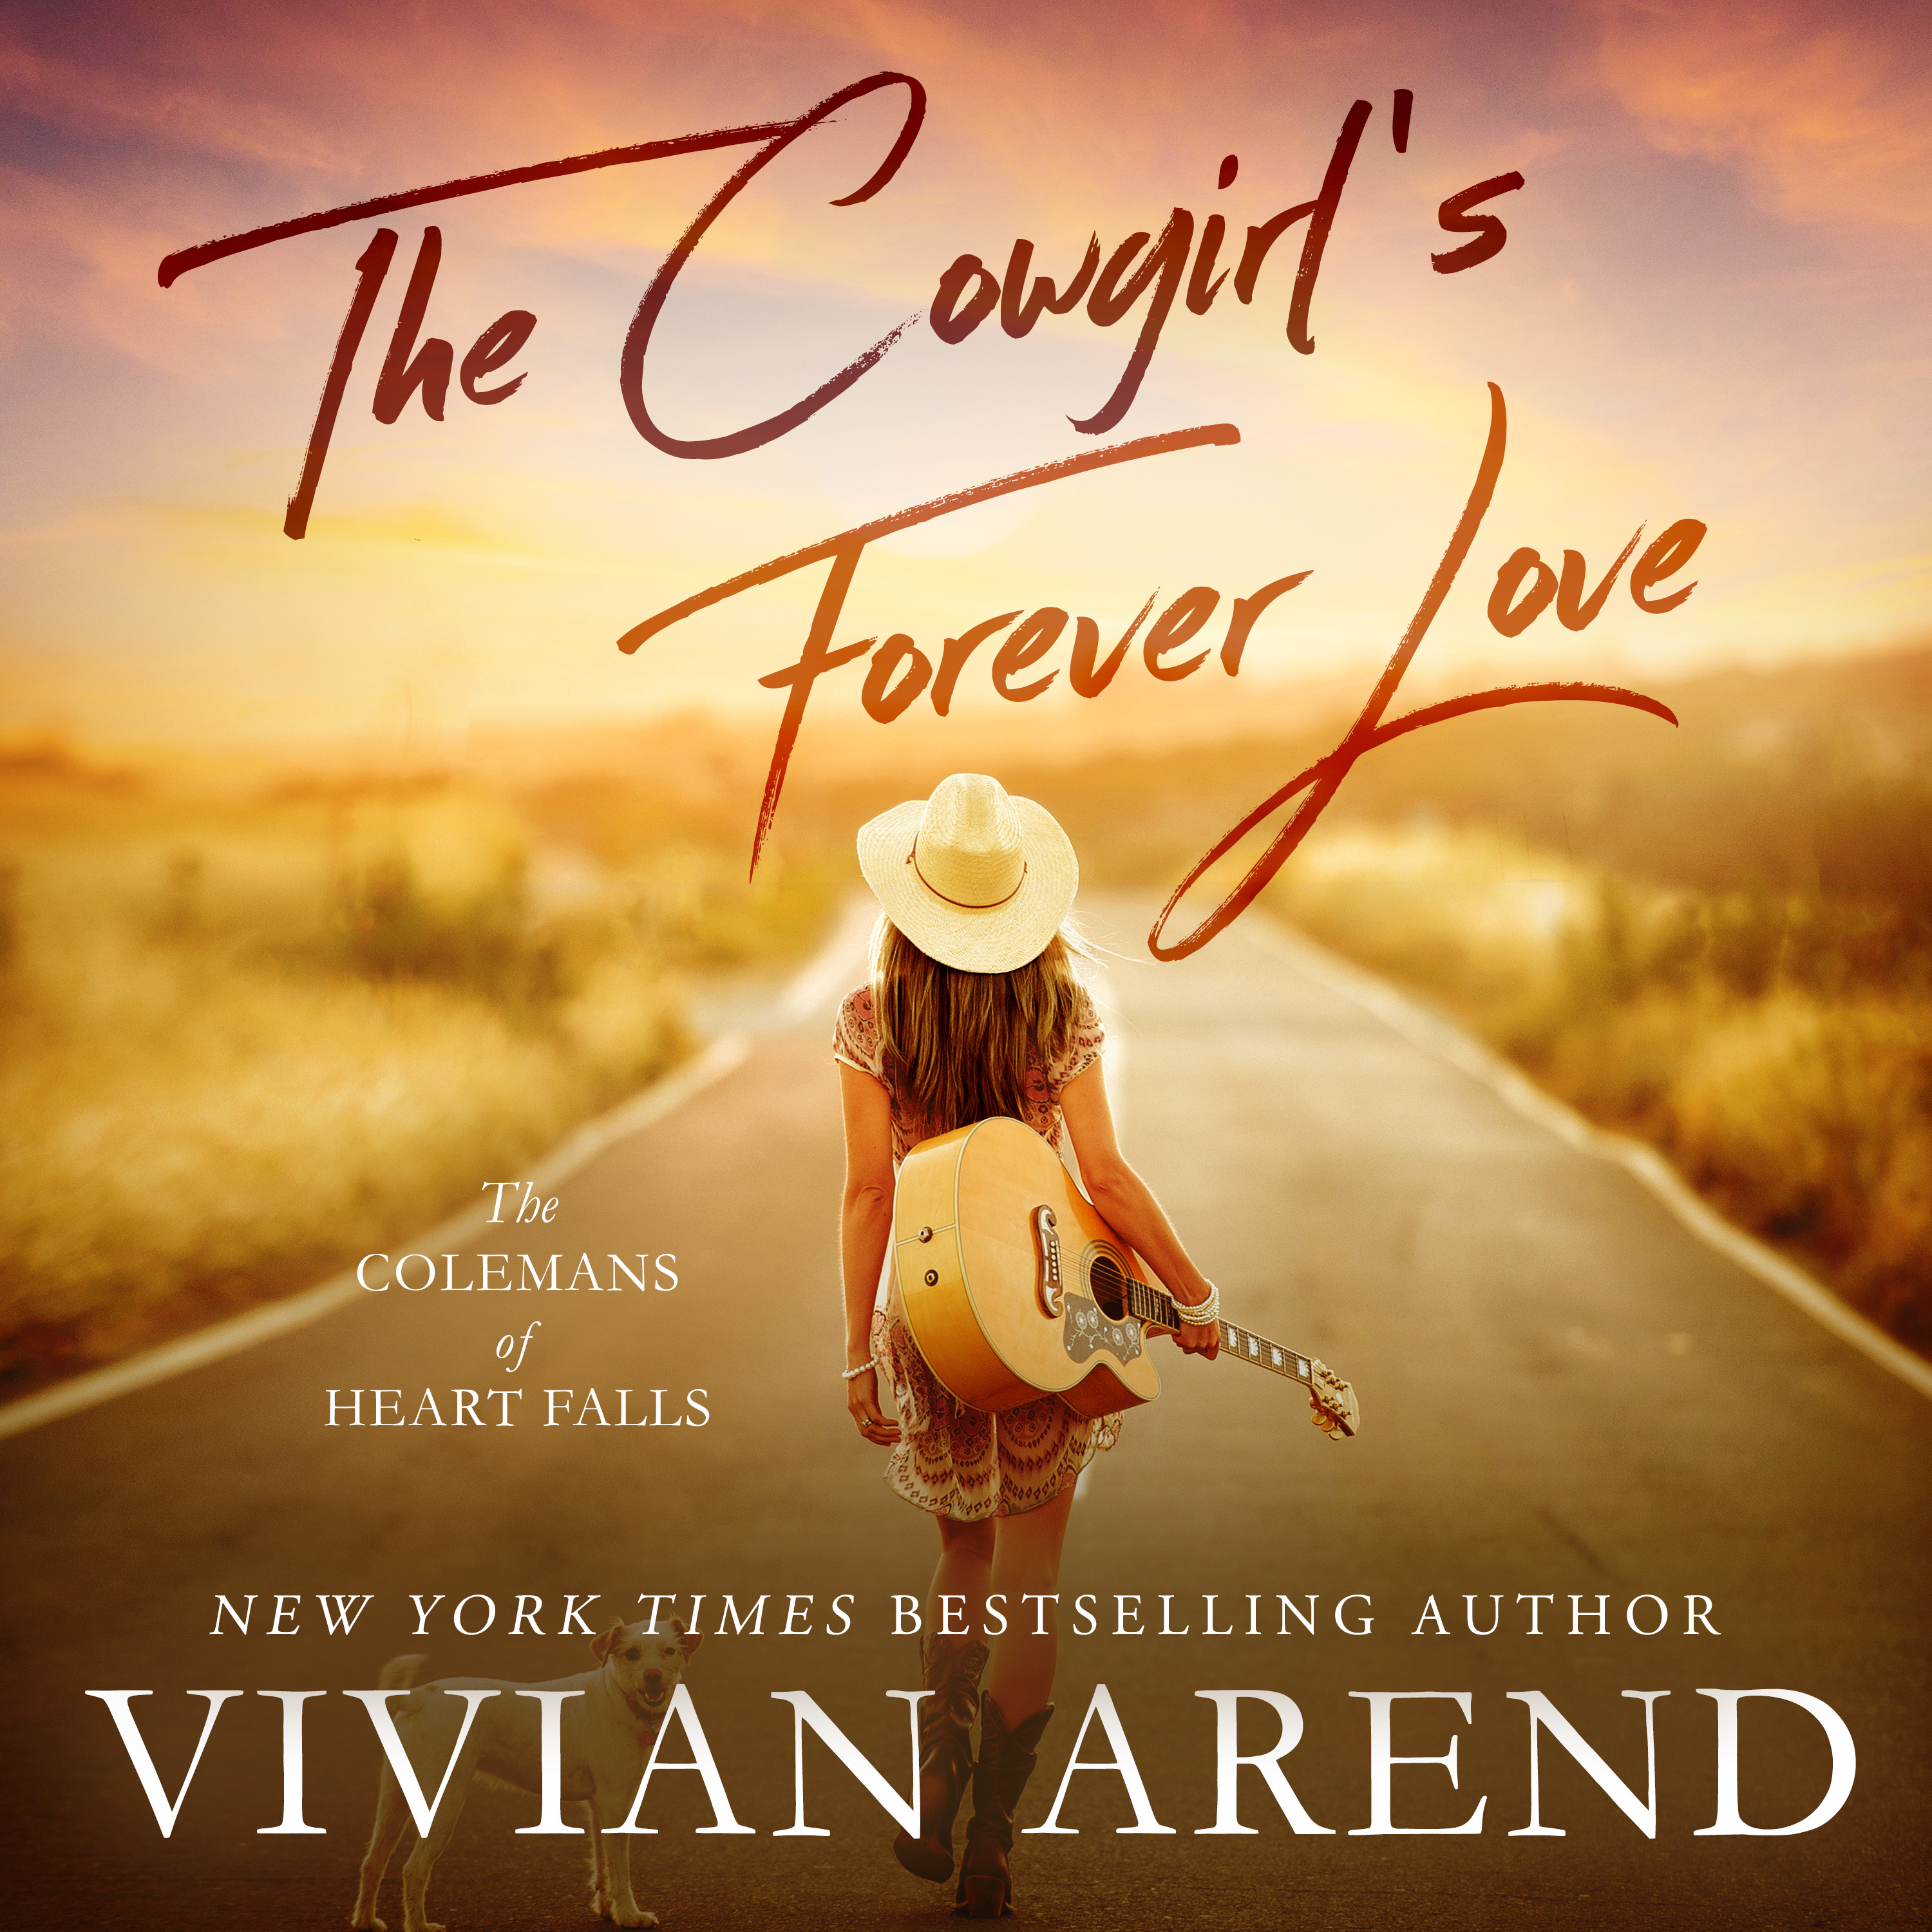 The Cowgirl's Forever Love audiobook by Vivian Arend